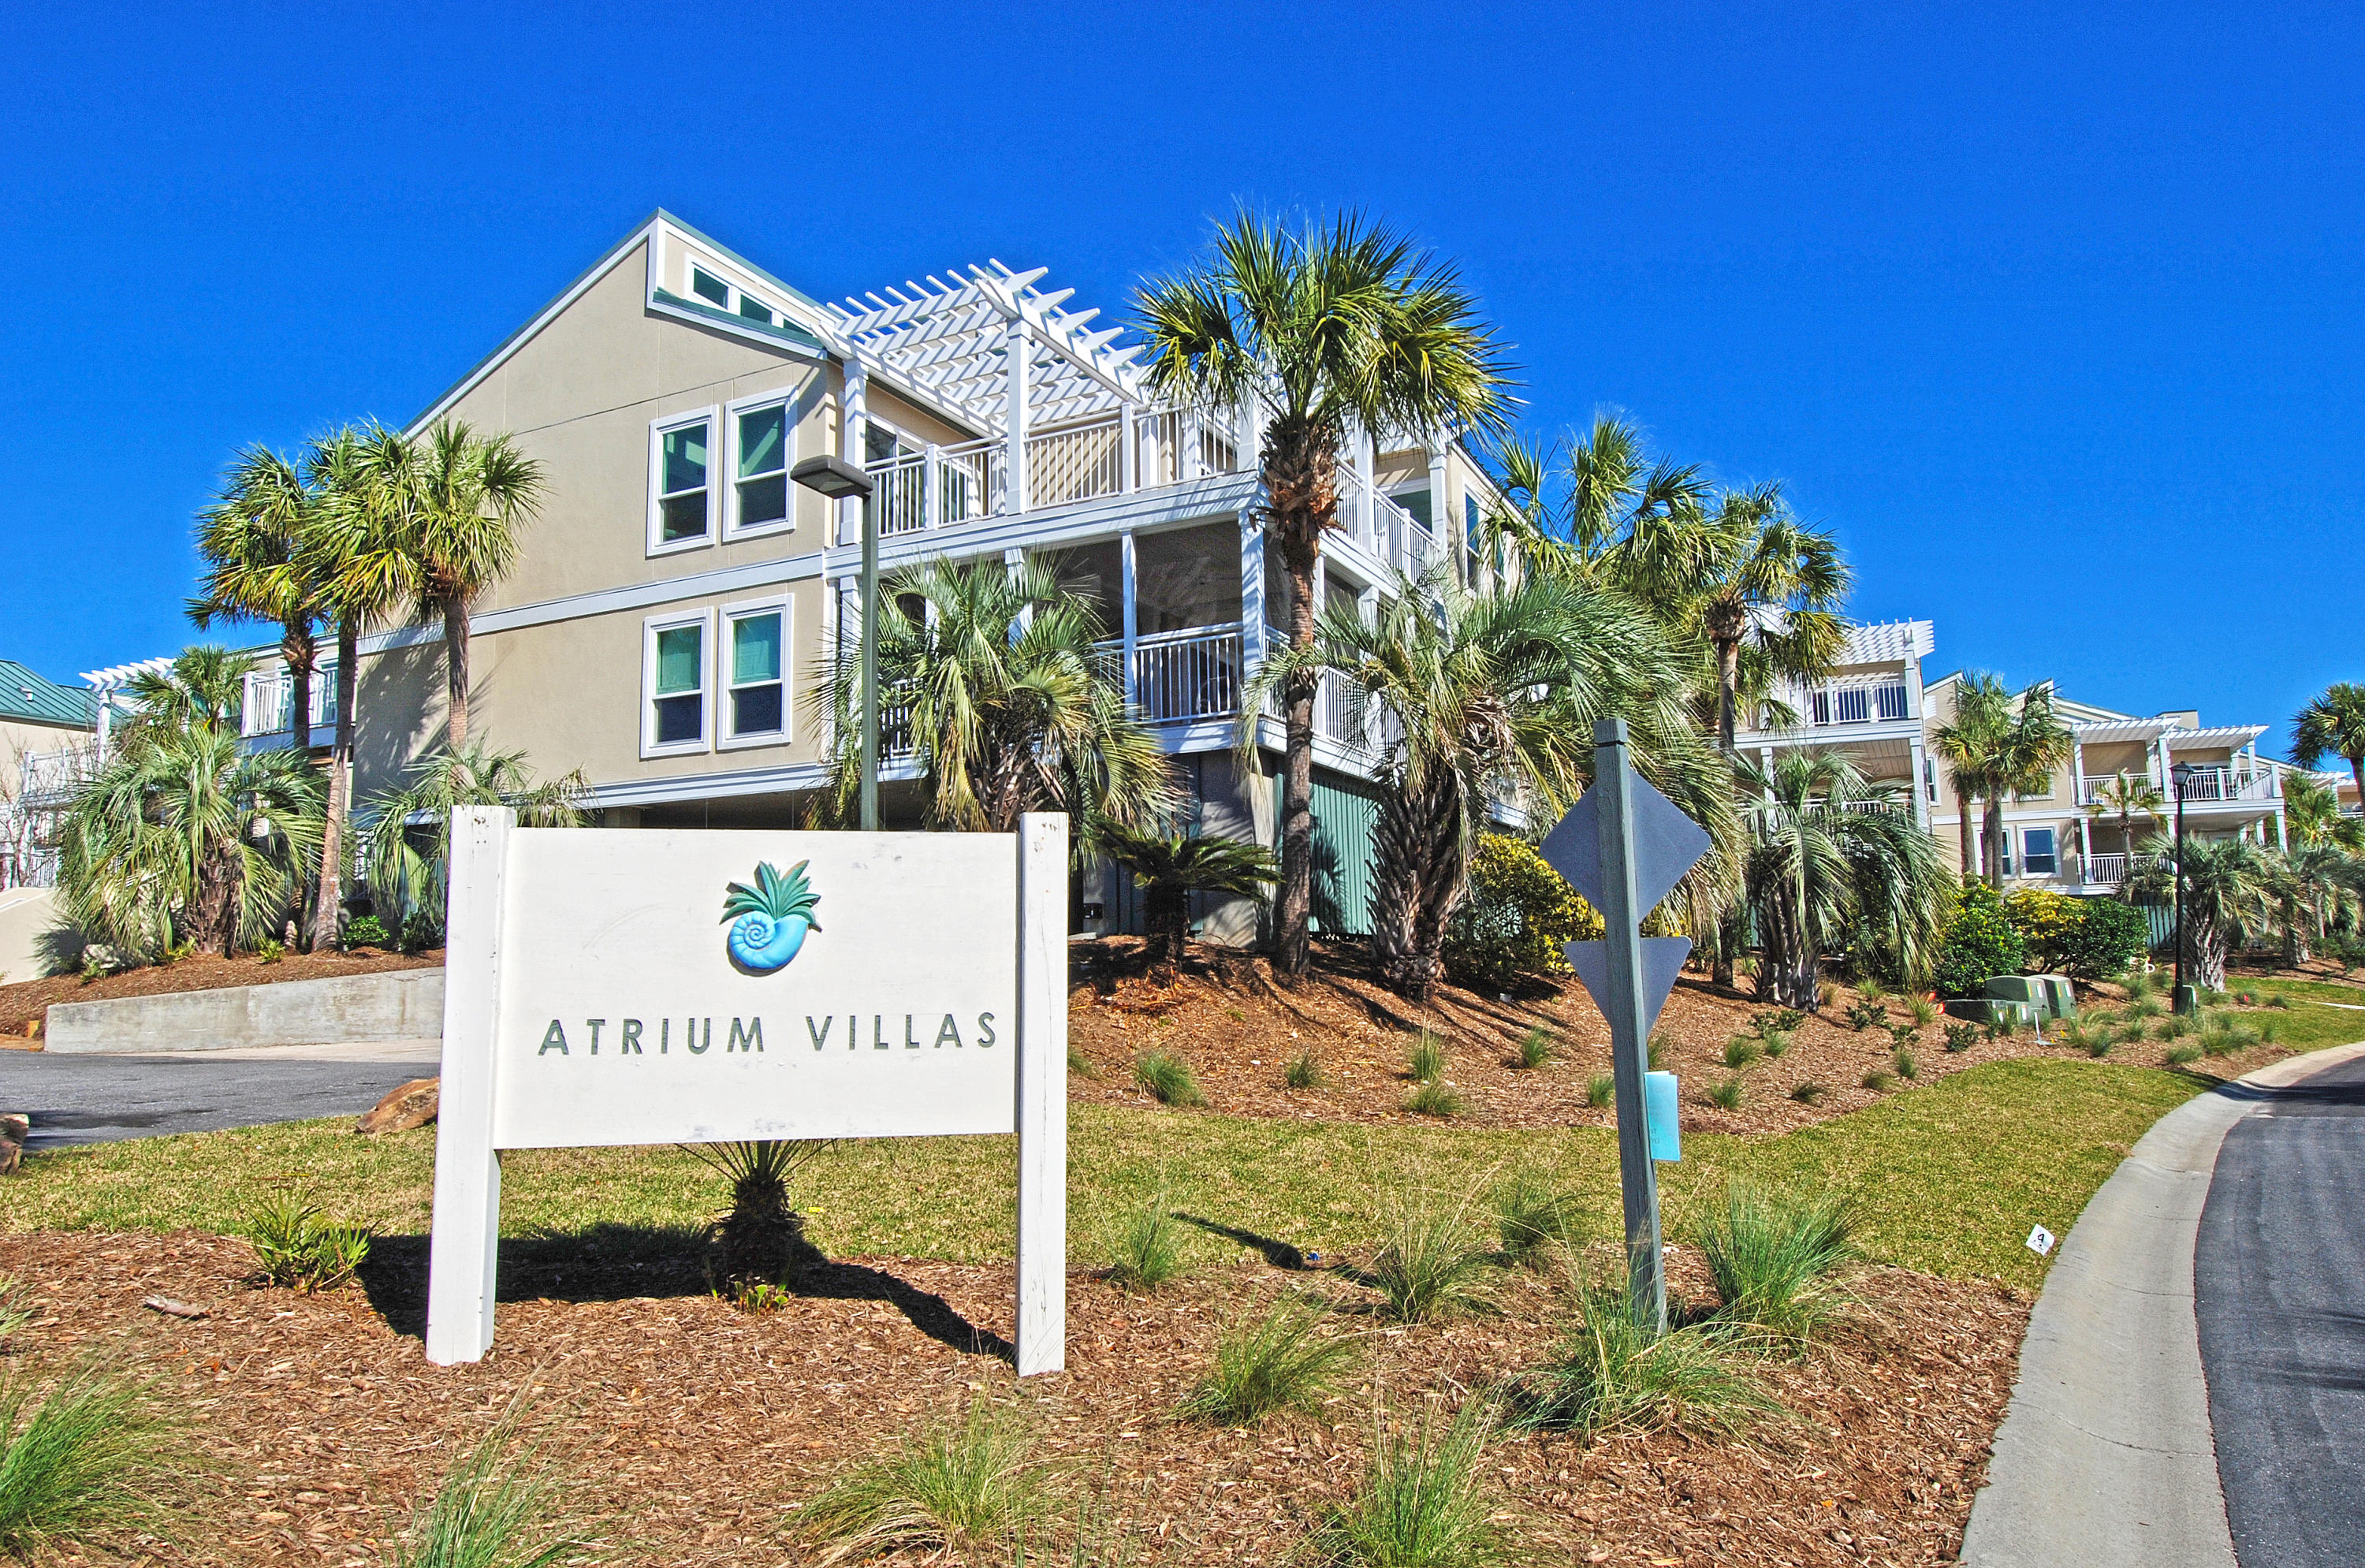 Atrium Villas Homes For Sale - 2943 Atrium Villa, Seabrook Island, SC - 6